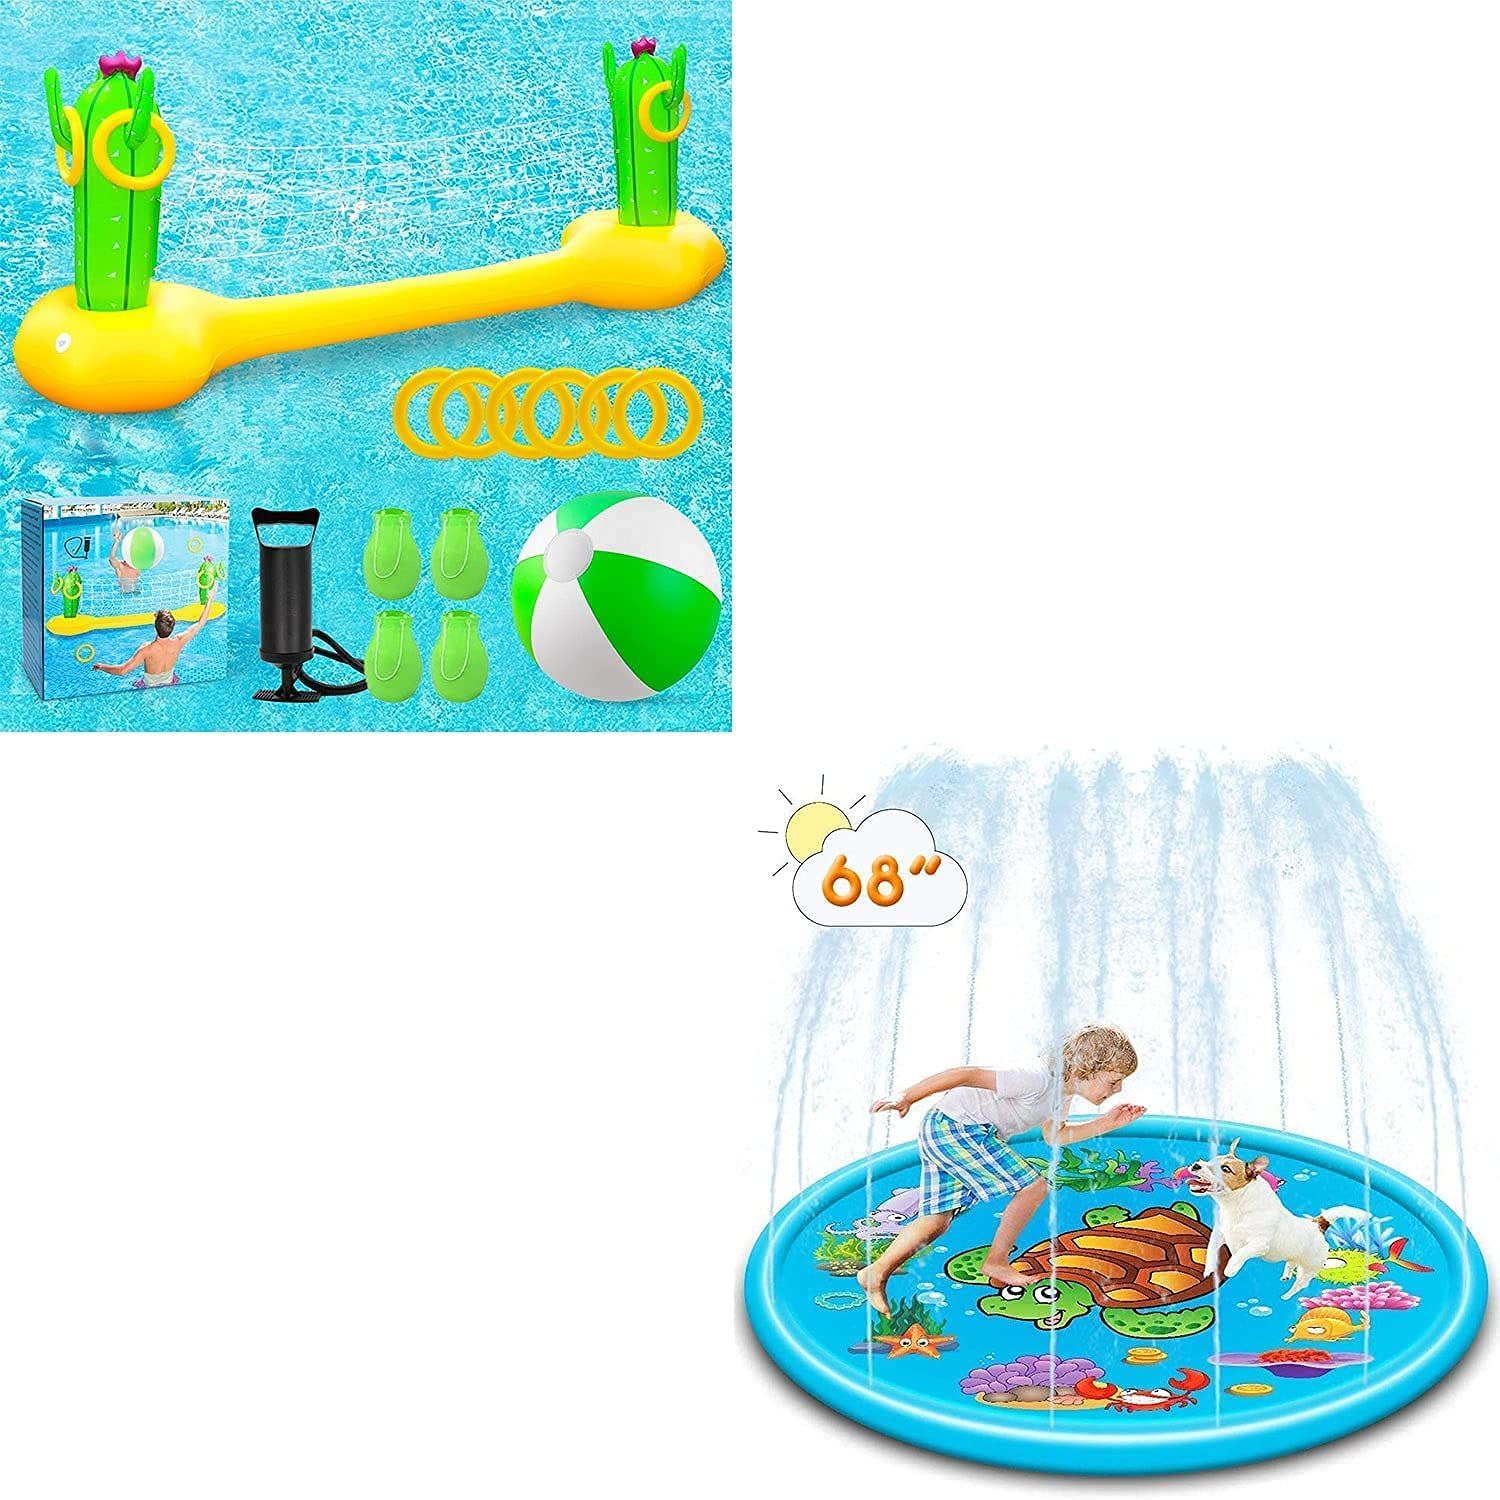 X XBEN Inflatable Pool Volleyball Game with Floa Brand Cheap Sale Venue Toss supreme Ring